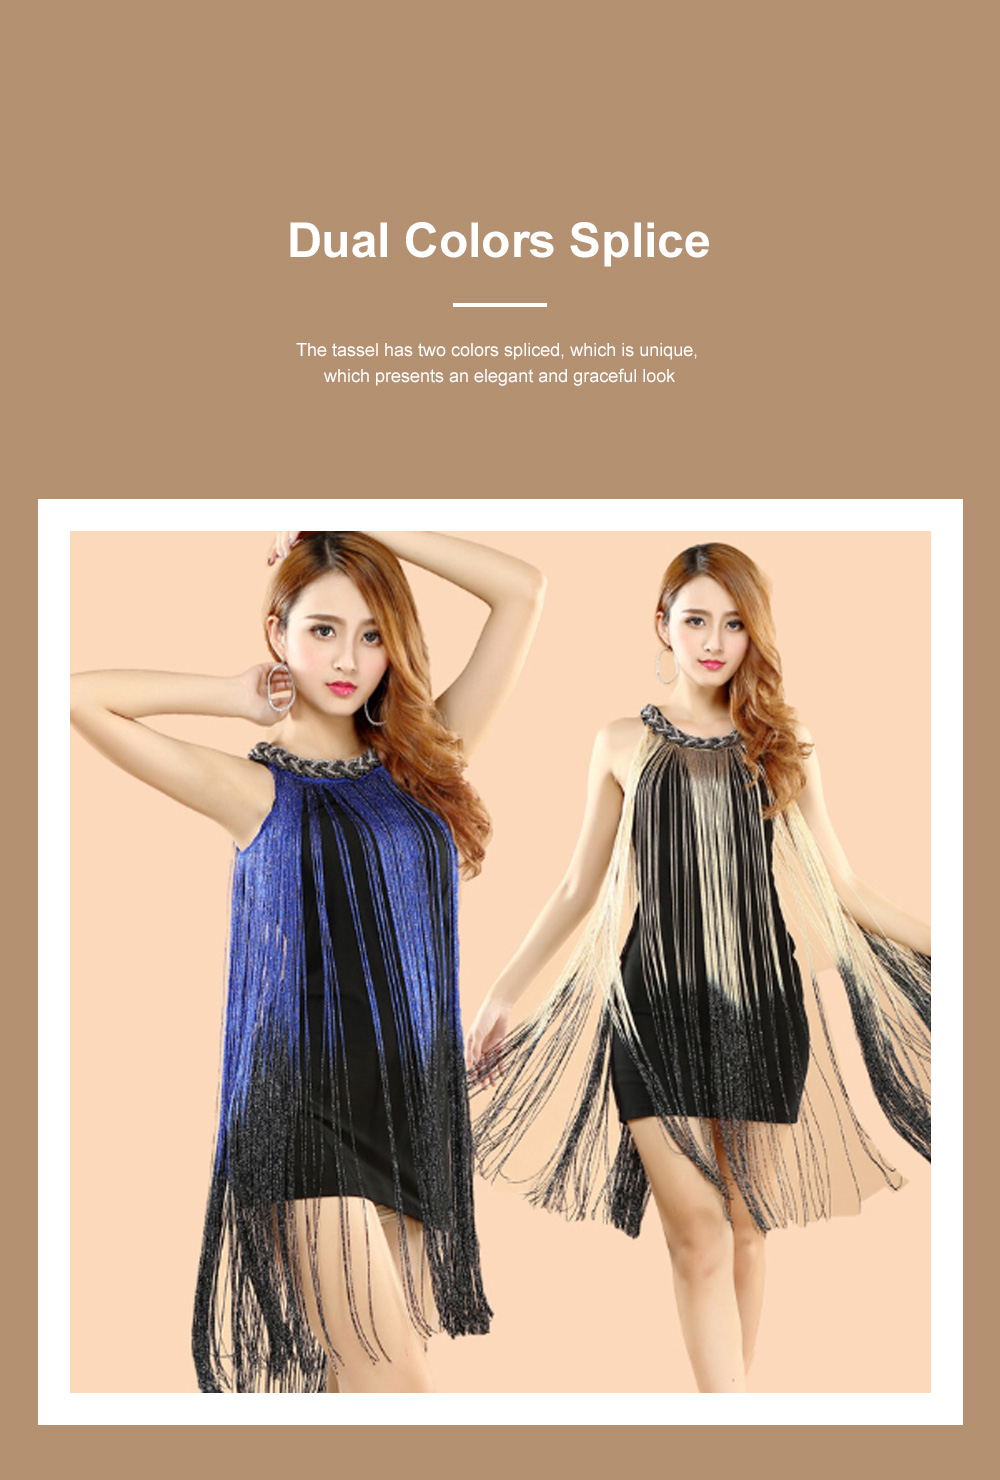 Adult Latin Dance Dress with Delicate Unique Tassel Dual Colors Spliced Stretchy Polyester for Women 4